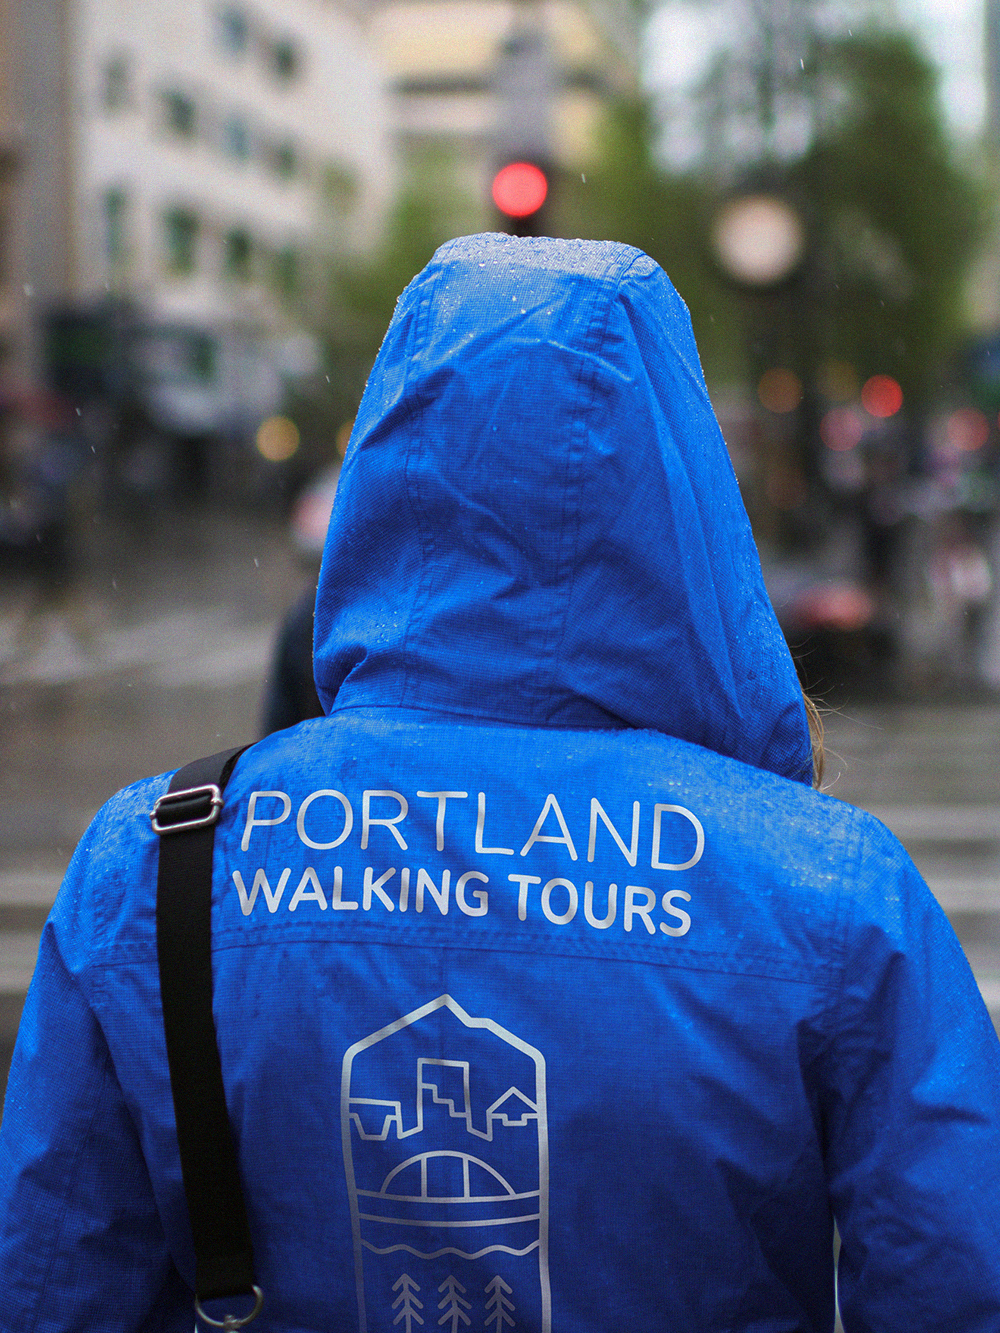 Portland-born-and-based - Founded in our home town, DOUG focuses on keepin' it local